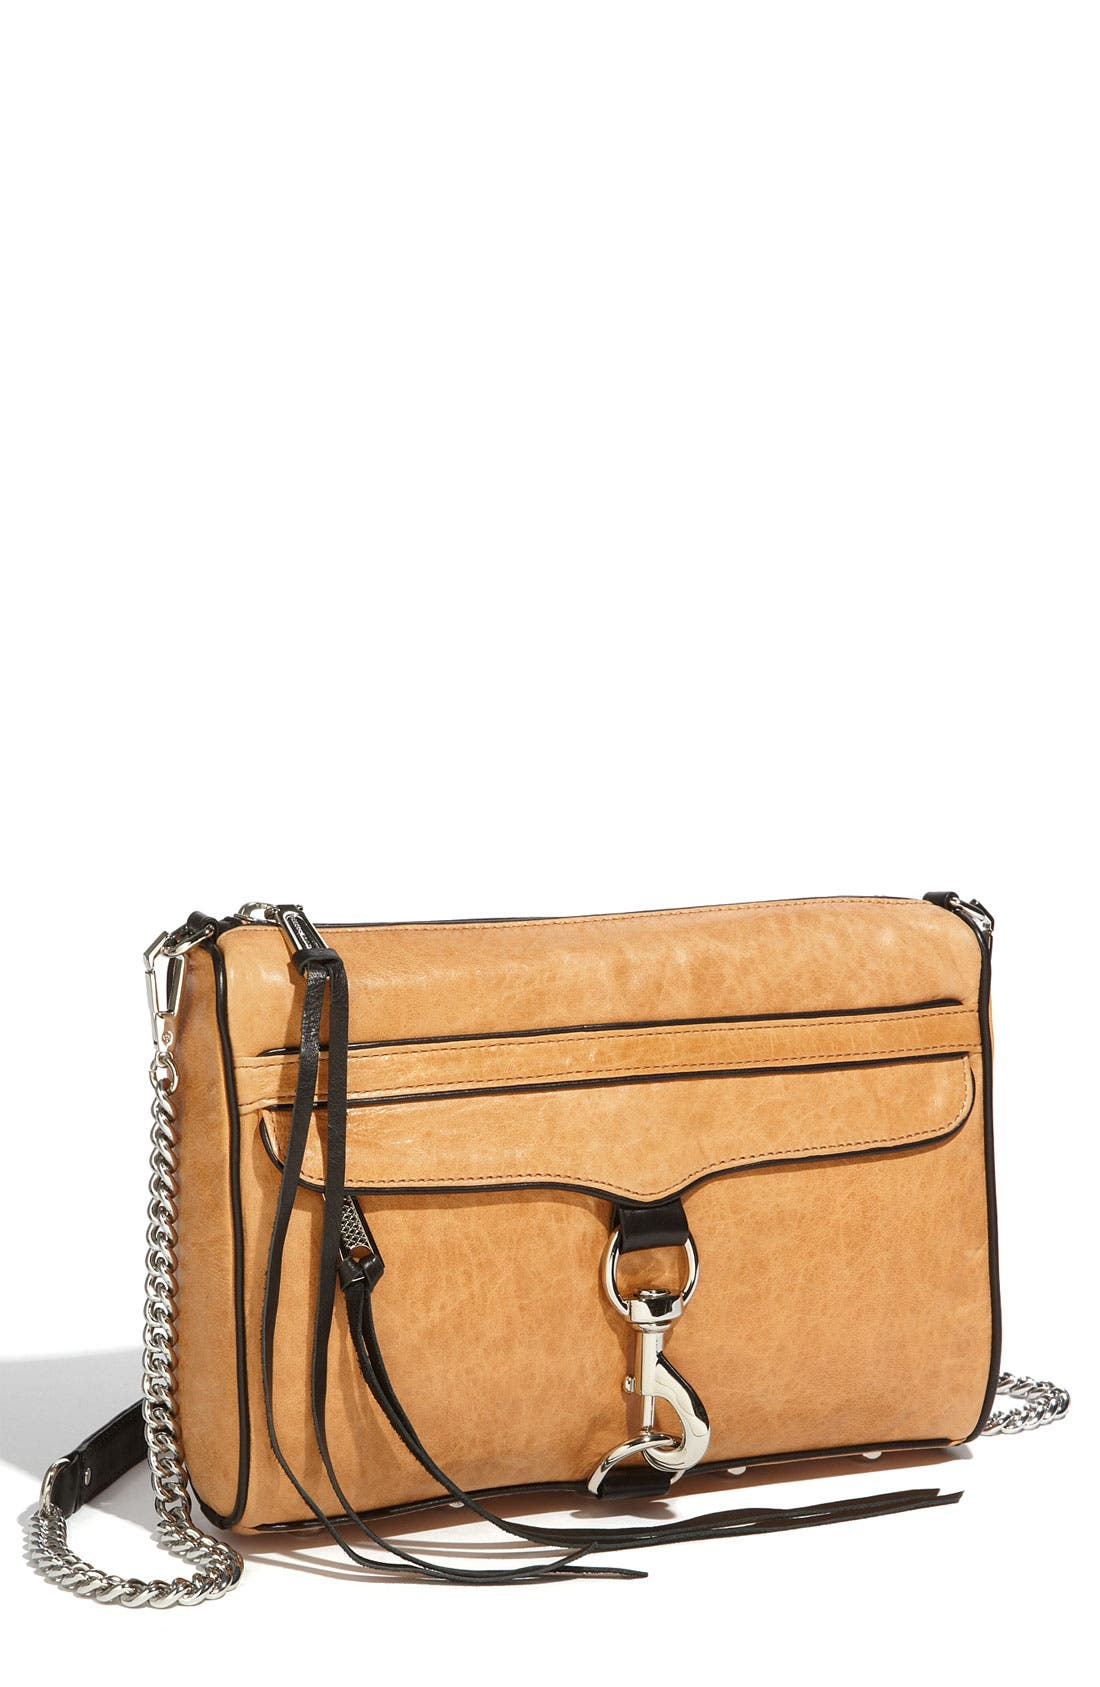 Alternate Image 1 Selected - Rebecca Minkoff 'Classic MAC' Crossbody Clutch